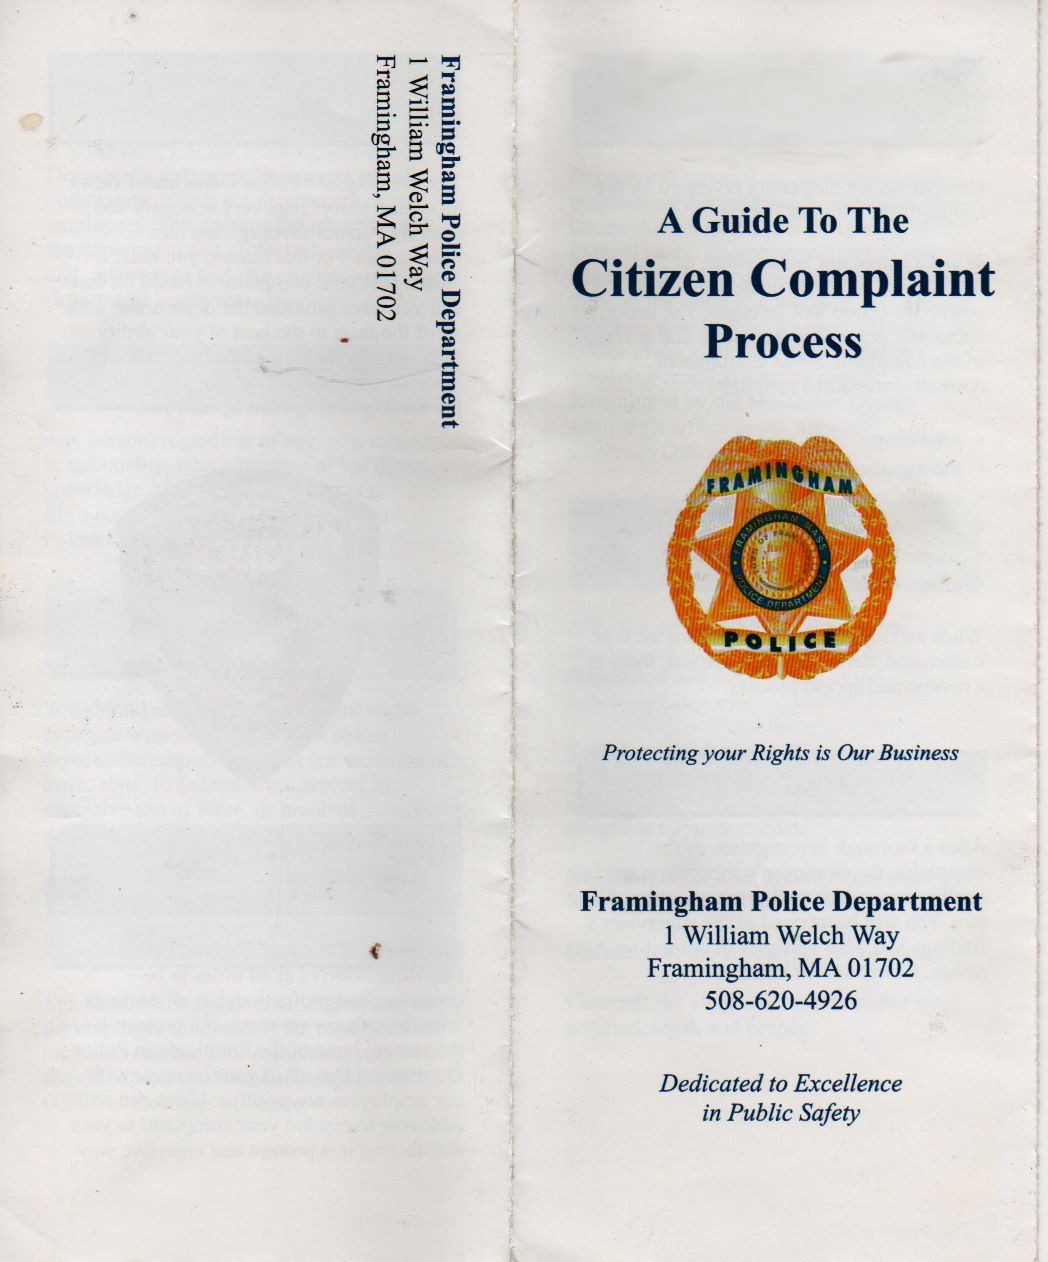 police complaint procedure File a police employee complaint  the incident occurred, but the conduct or action was lawful, proper and in accordance with department rules and procedures .